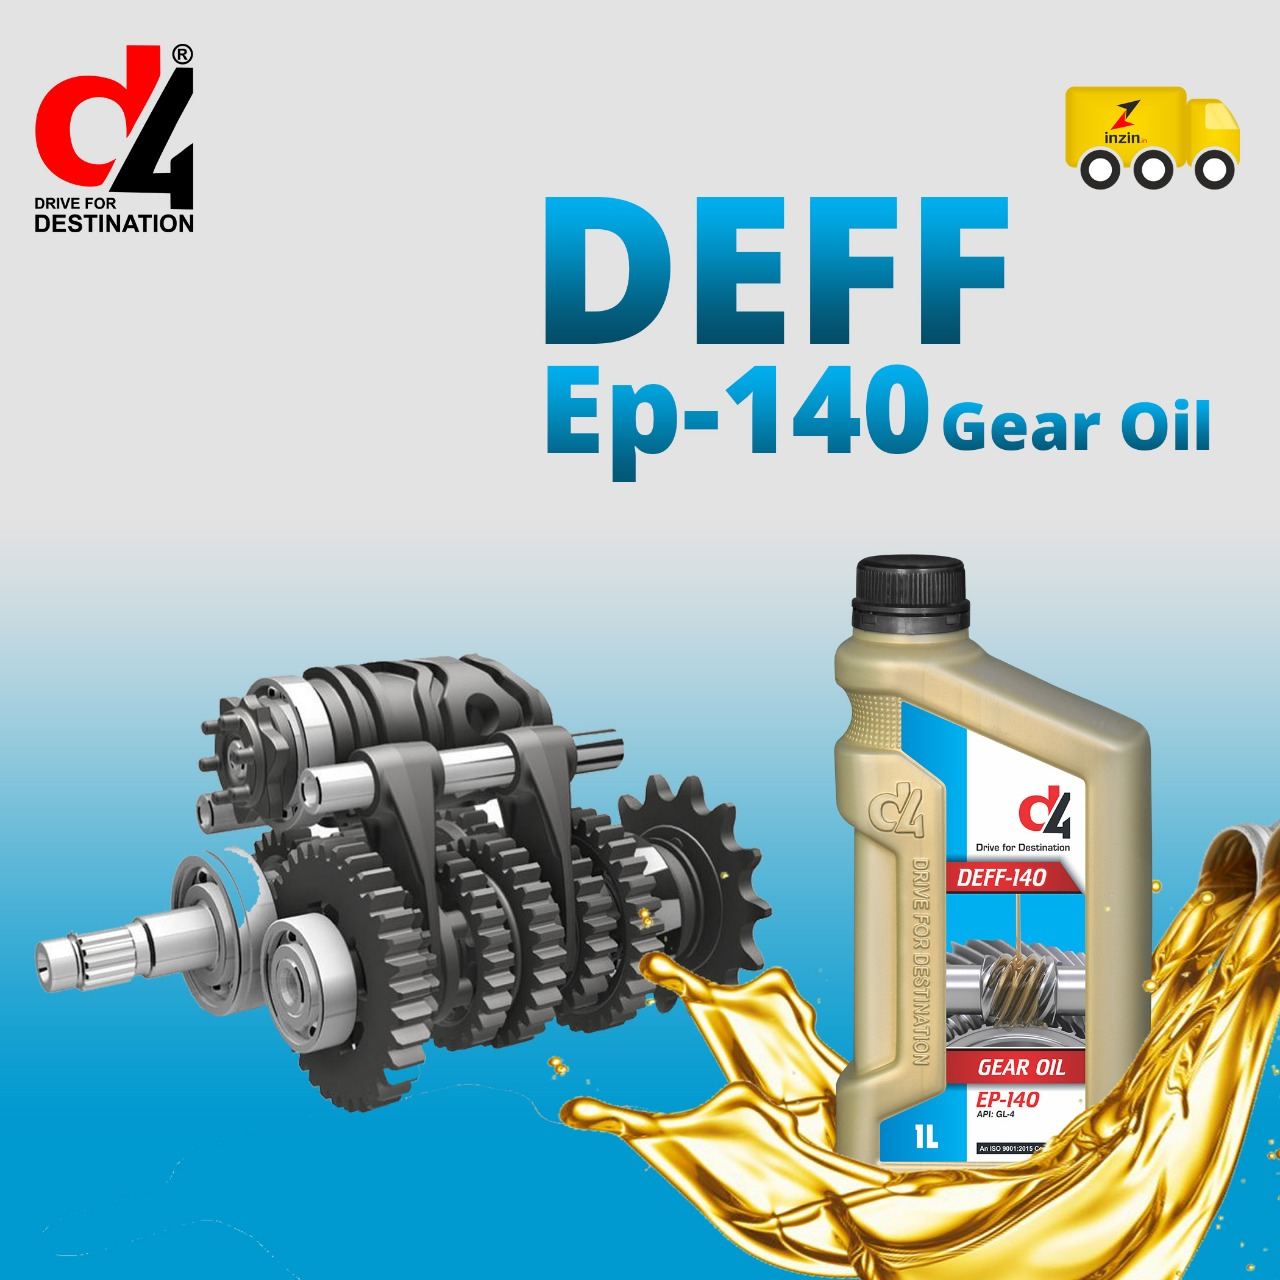 Gearbox Oil Types